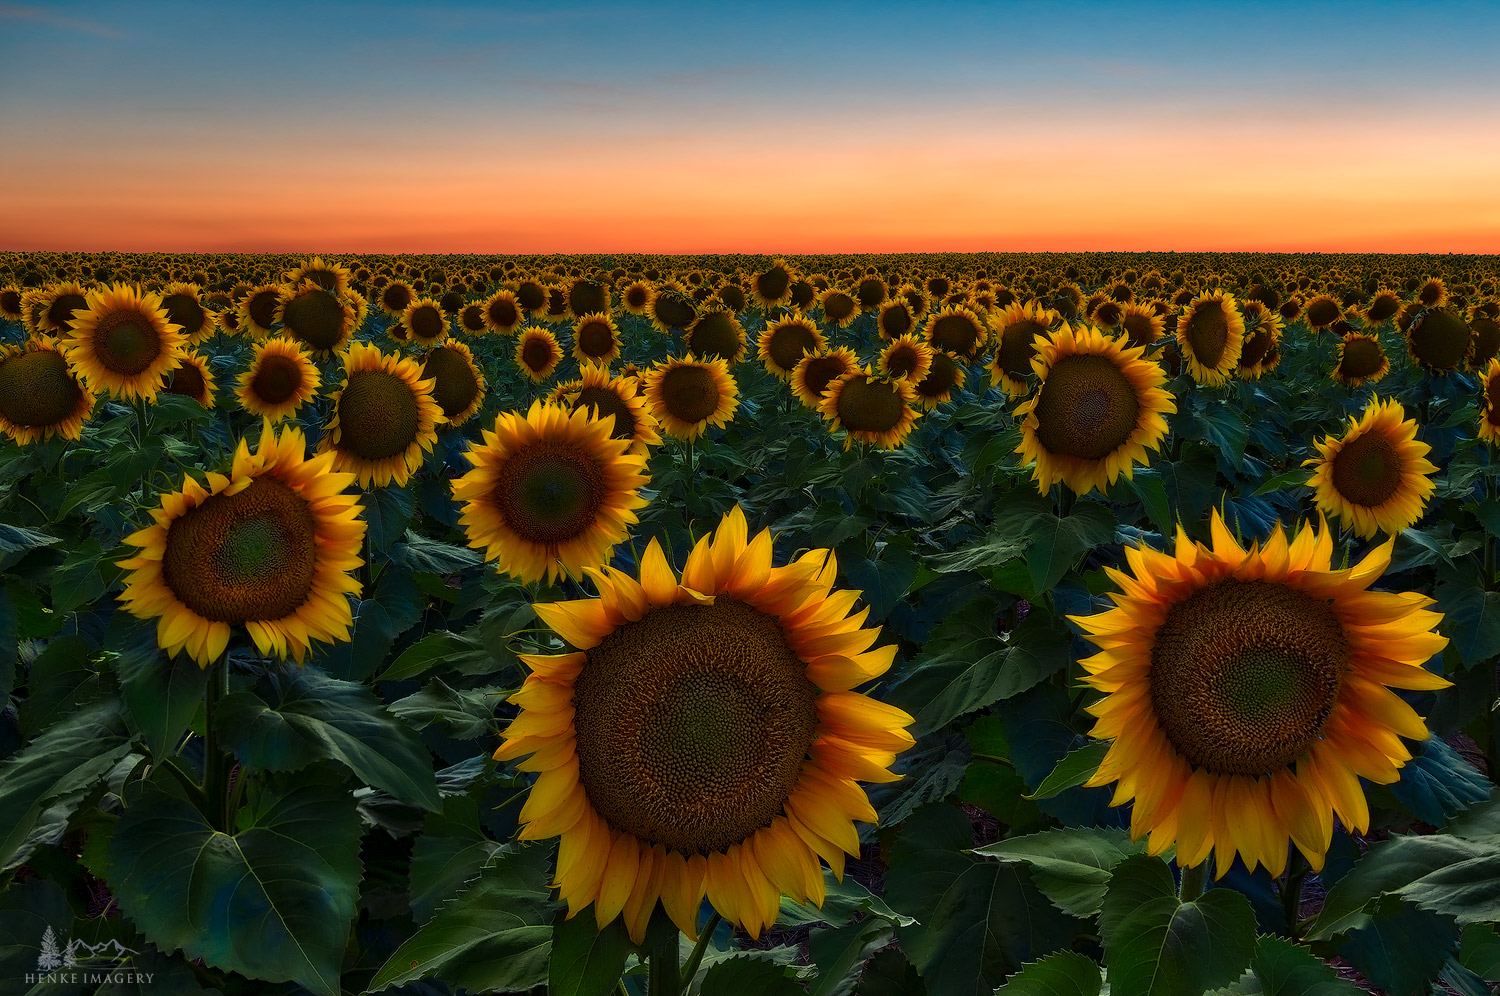 The many sunflower fields outside Denver, Colorado, are quite showy and appear to stretch out to the horizon.